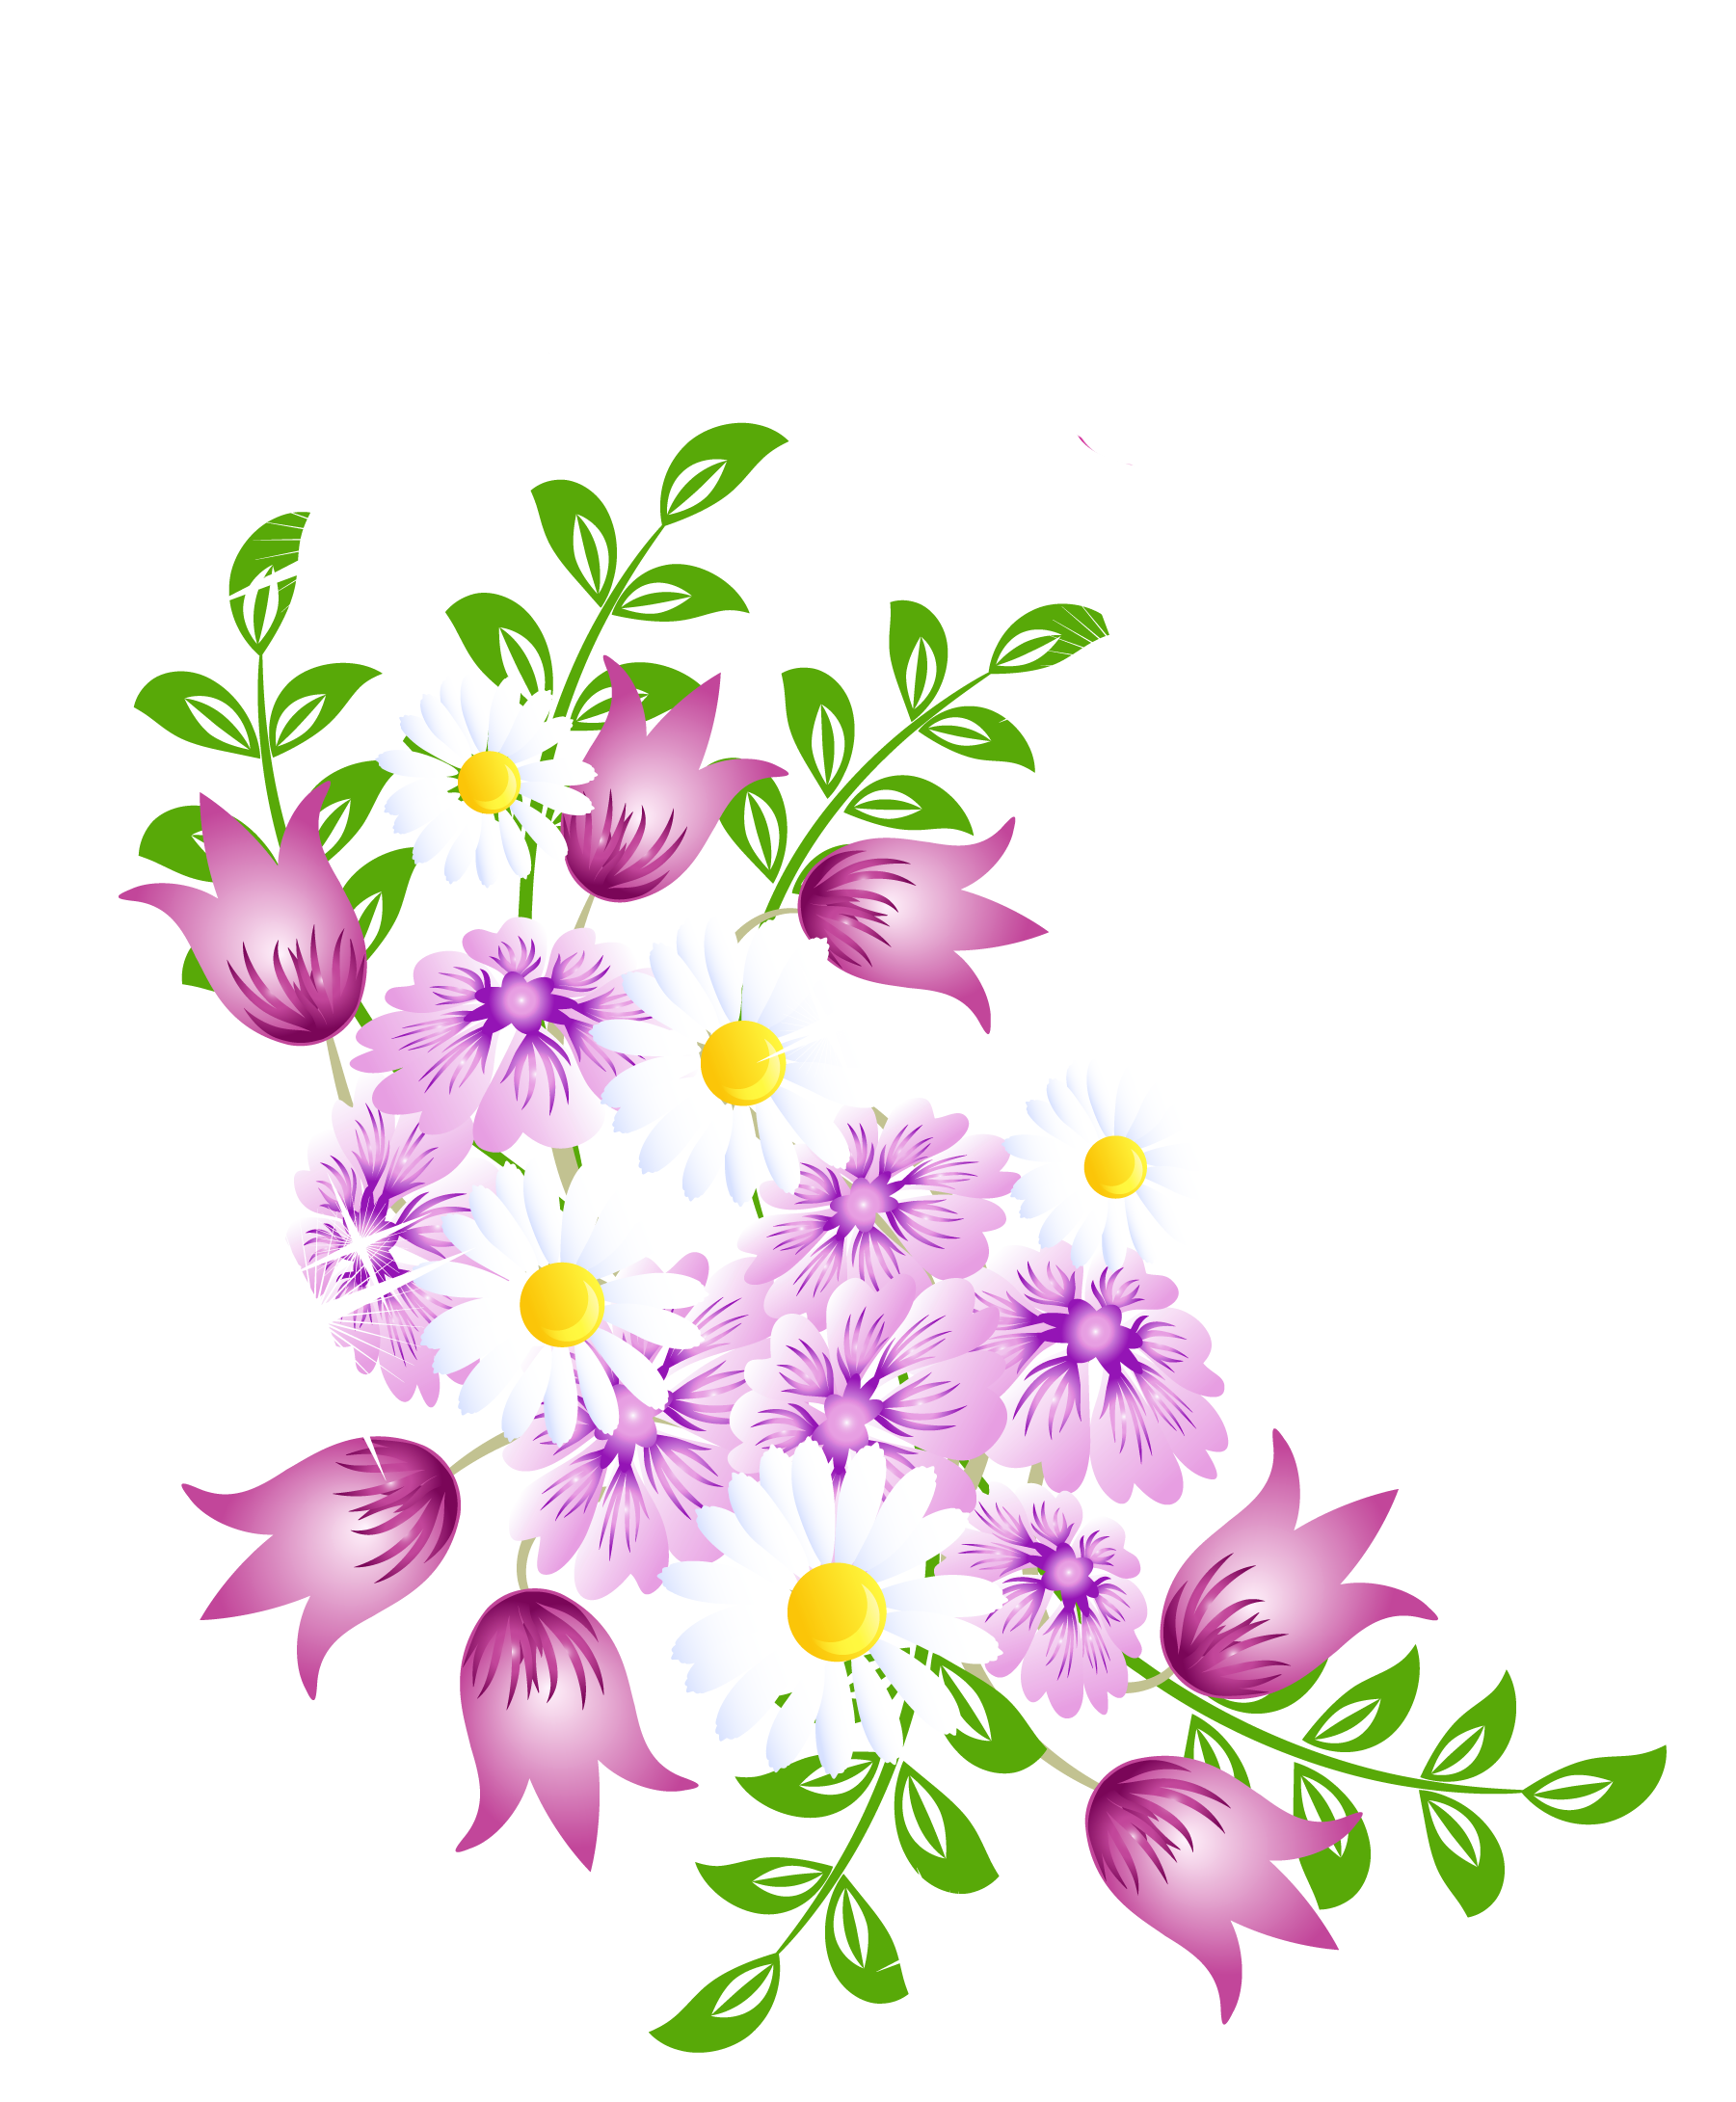 Spring flower clipart transparent svg freeuse FLÔRES & JARDIM E ETC. | FLÔRES | Pinterest | Art, Clip art and Spring svg freeuse